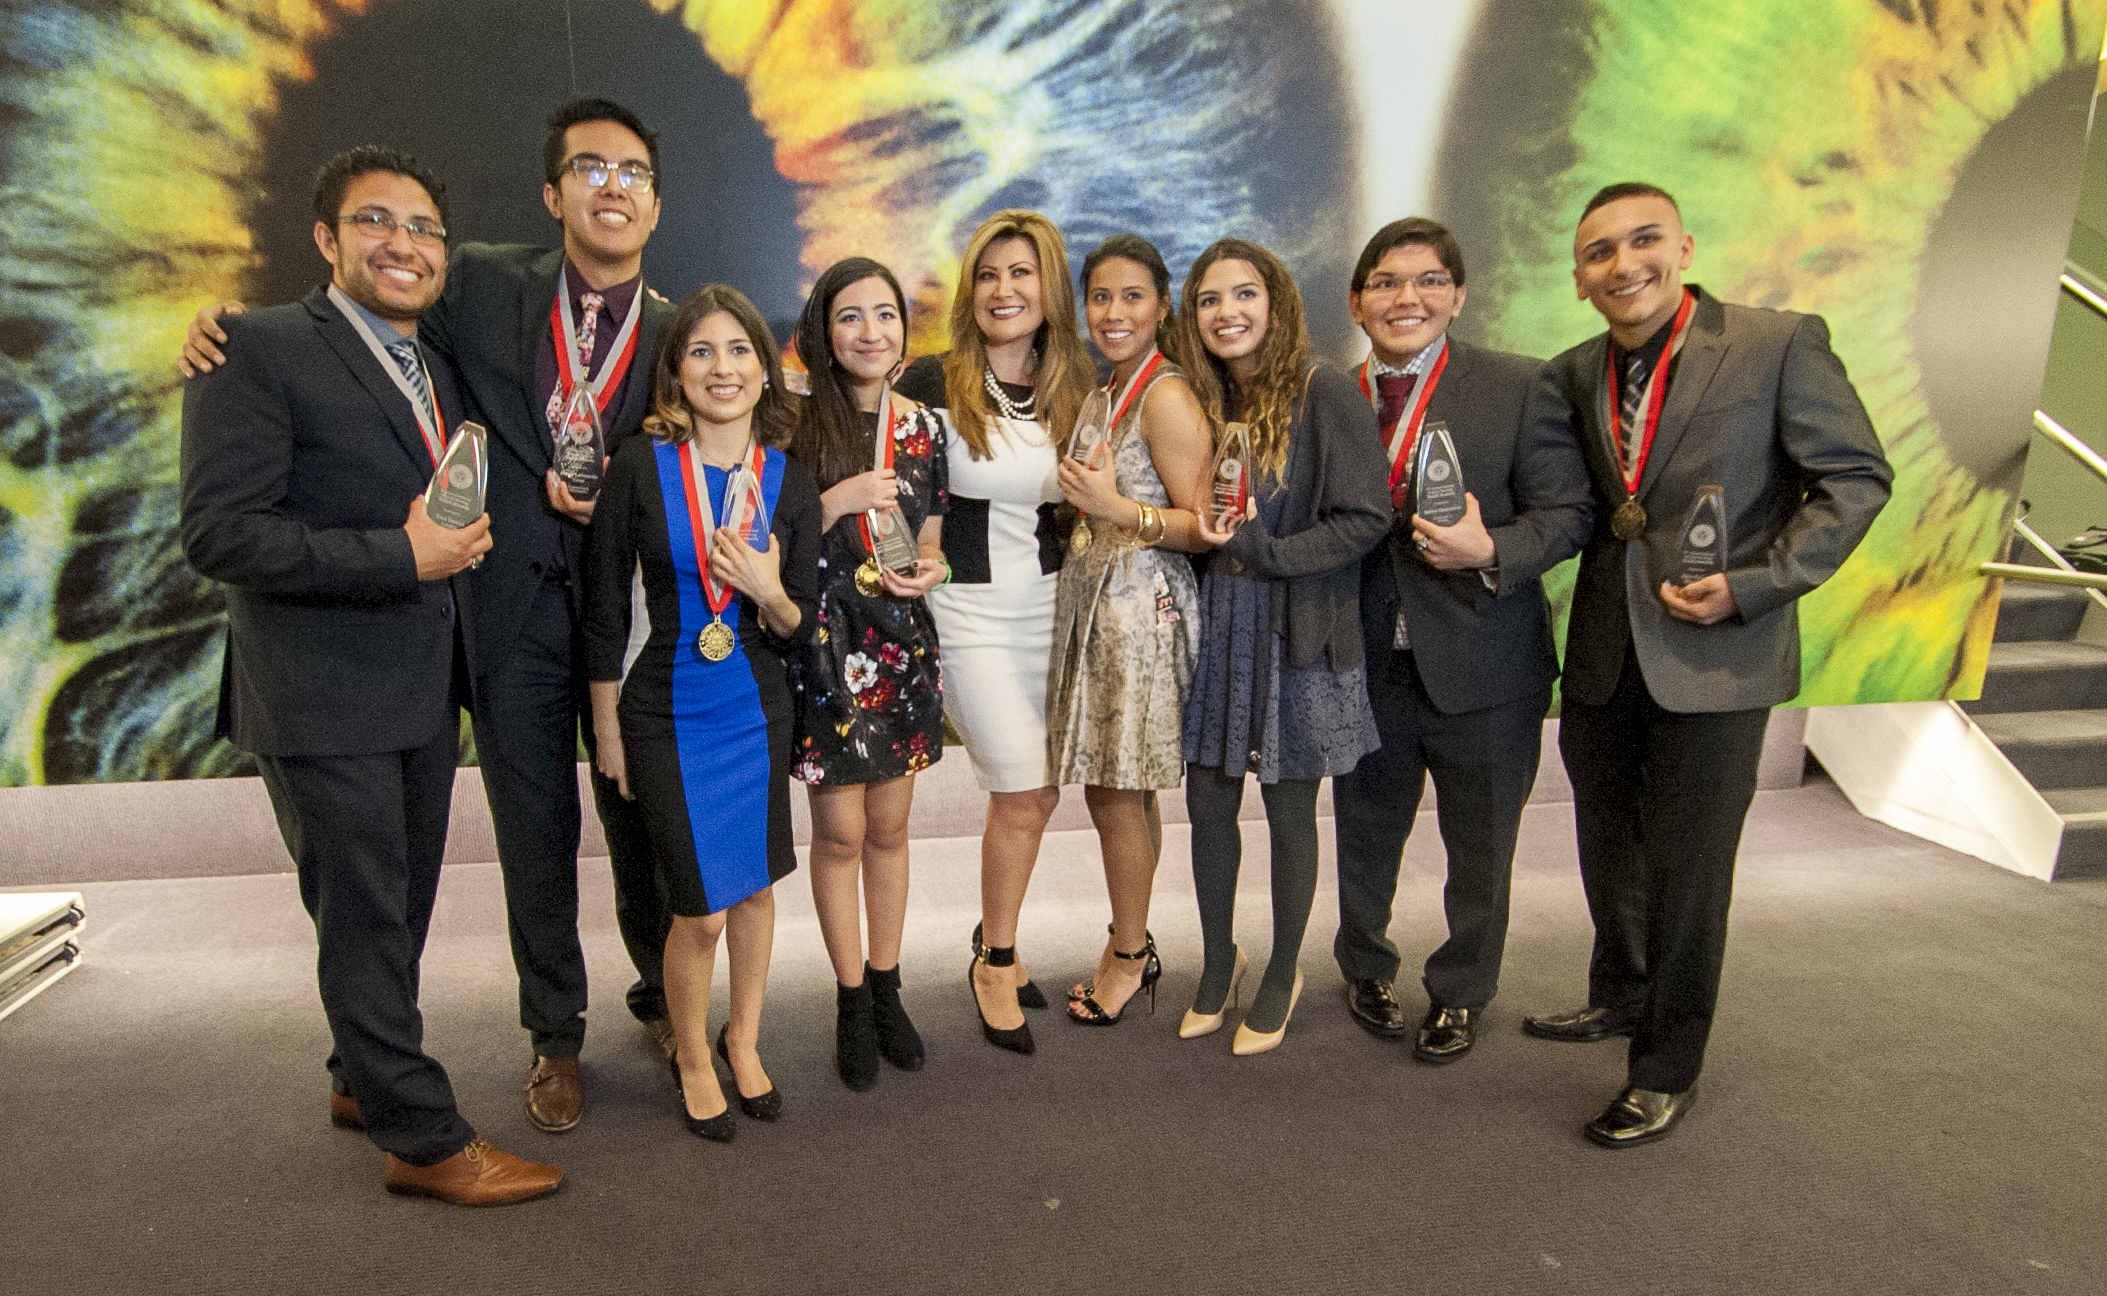 2015 National Youth Awards hosted in Los Angeles